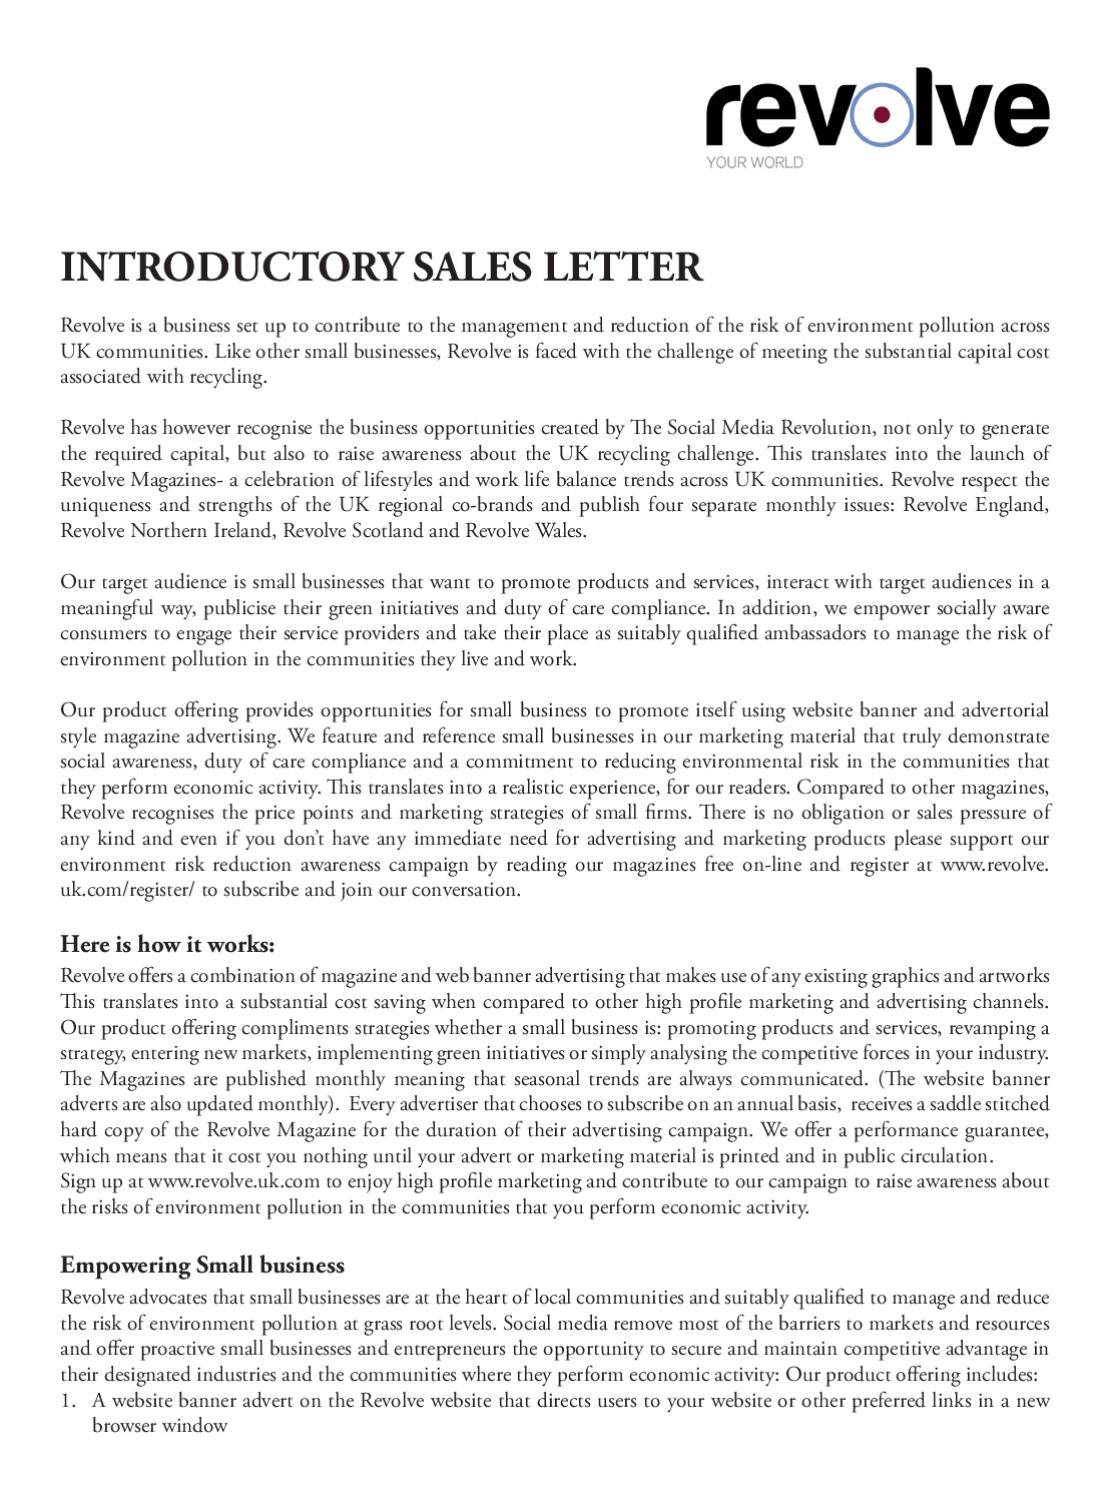 Introductory Sales Letter By Revolve Environmental Solutions Issuu